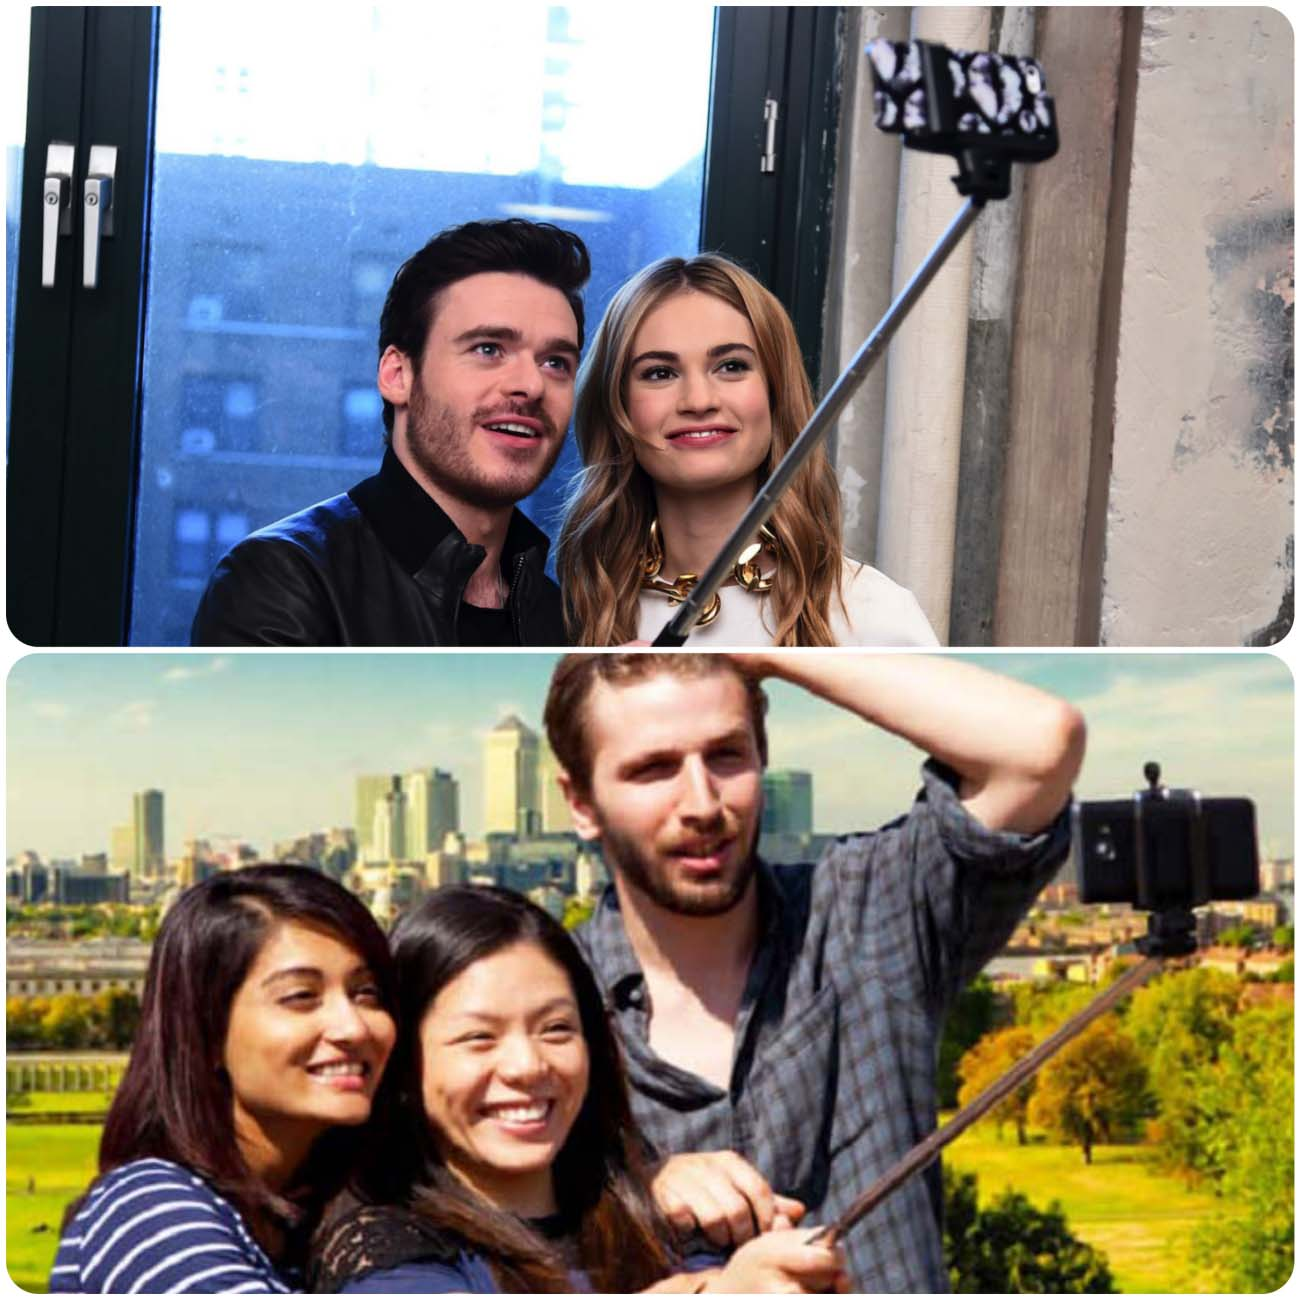 click-selfie-stick-Christmas-gift-for-teenage-boys_Fotor_Collage